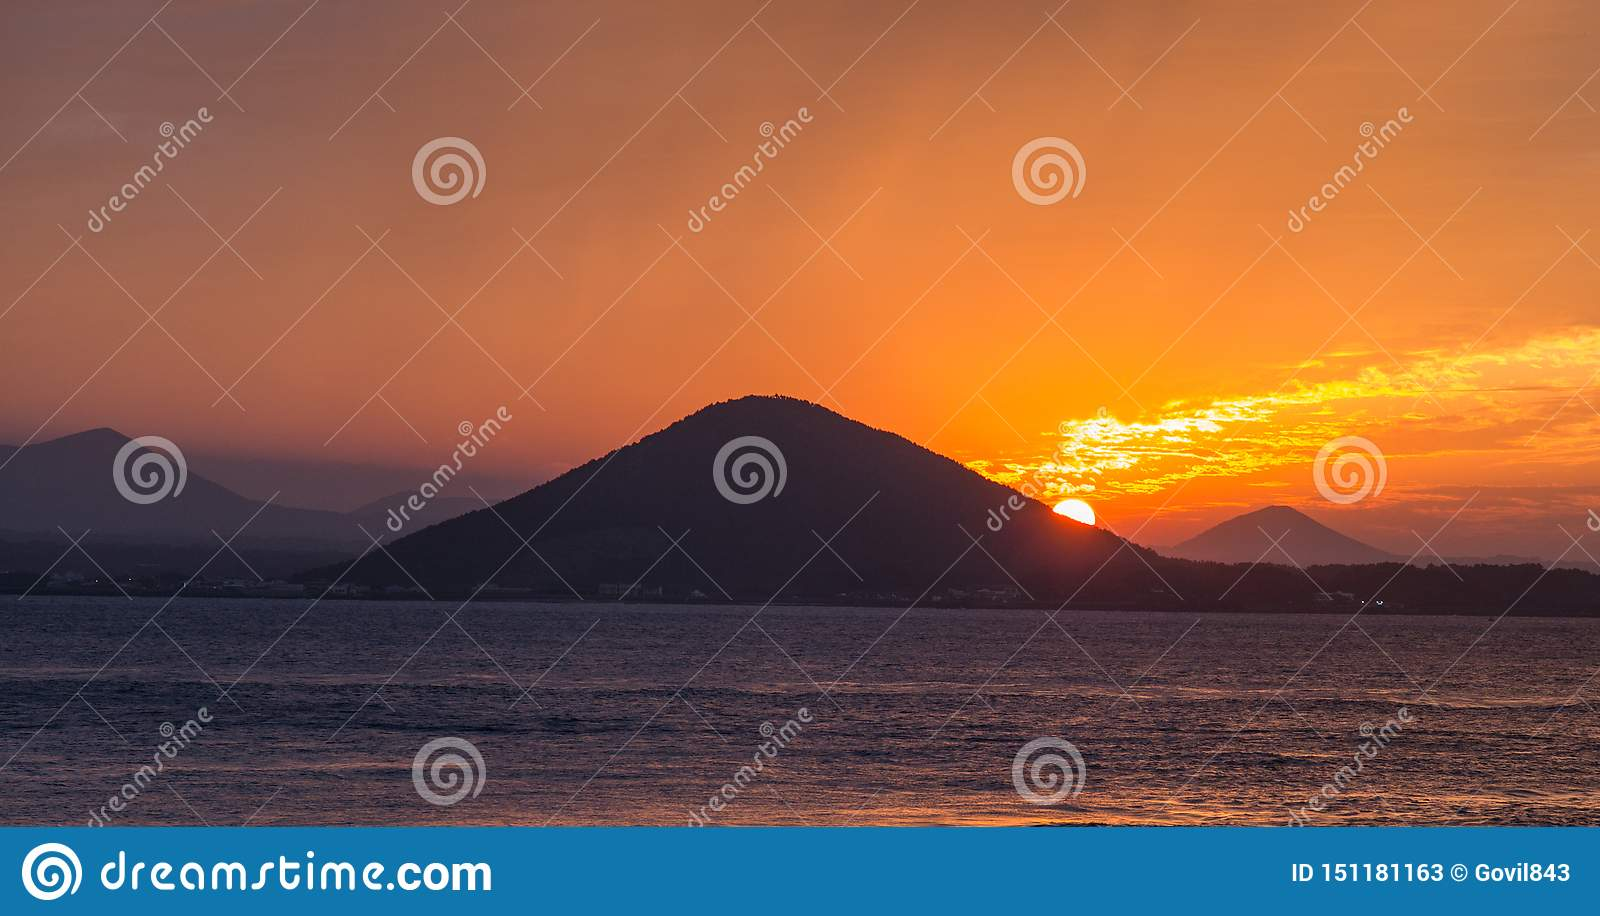 Sunset on the beach with beautiful sky, nature landscape